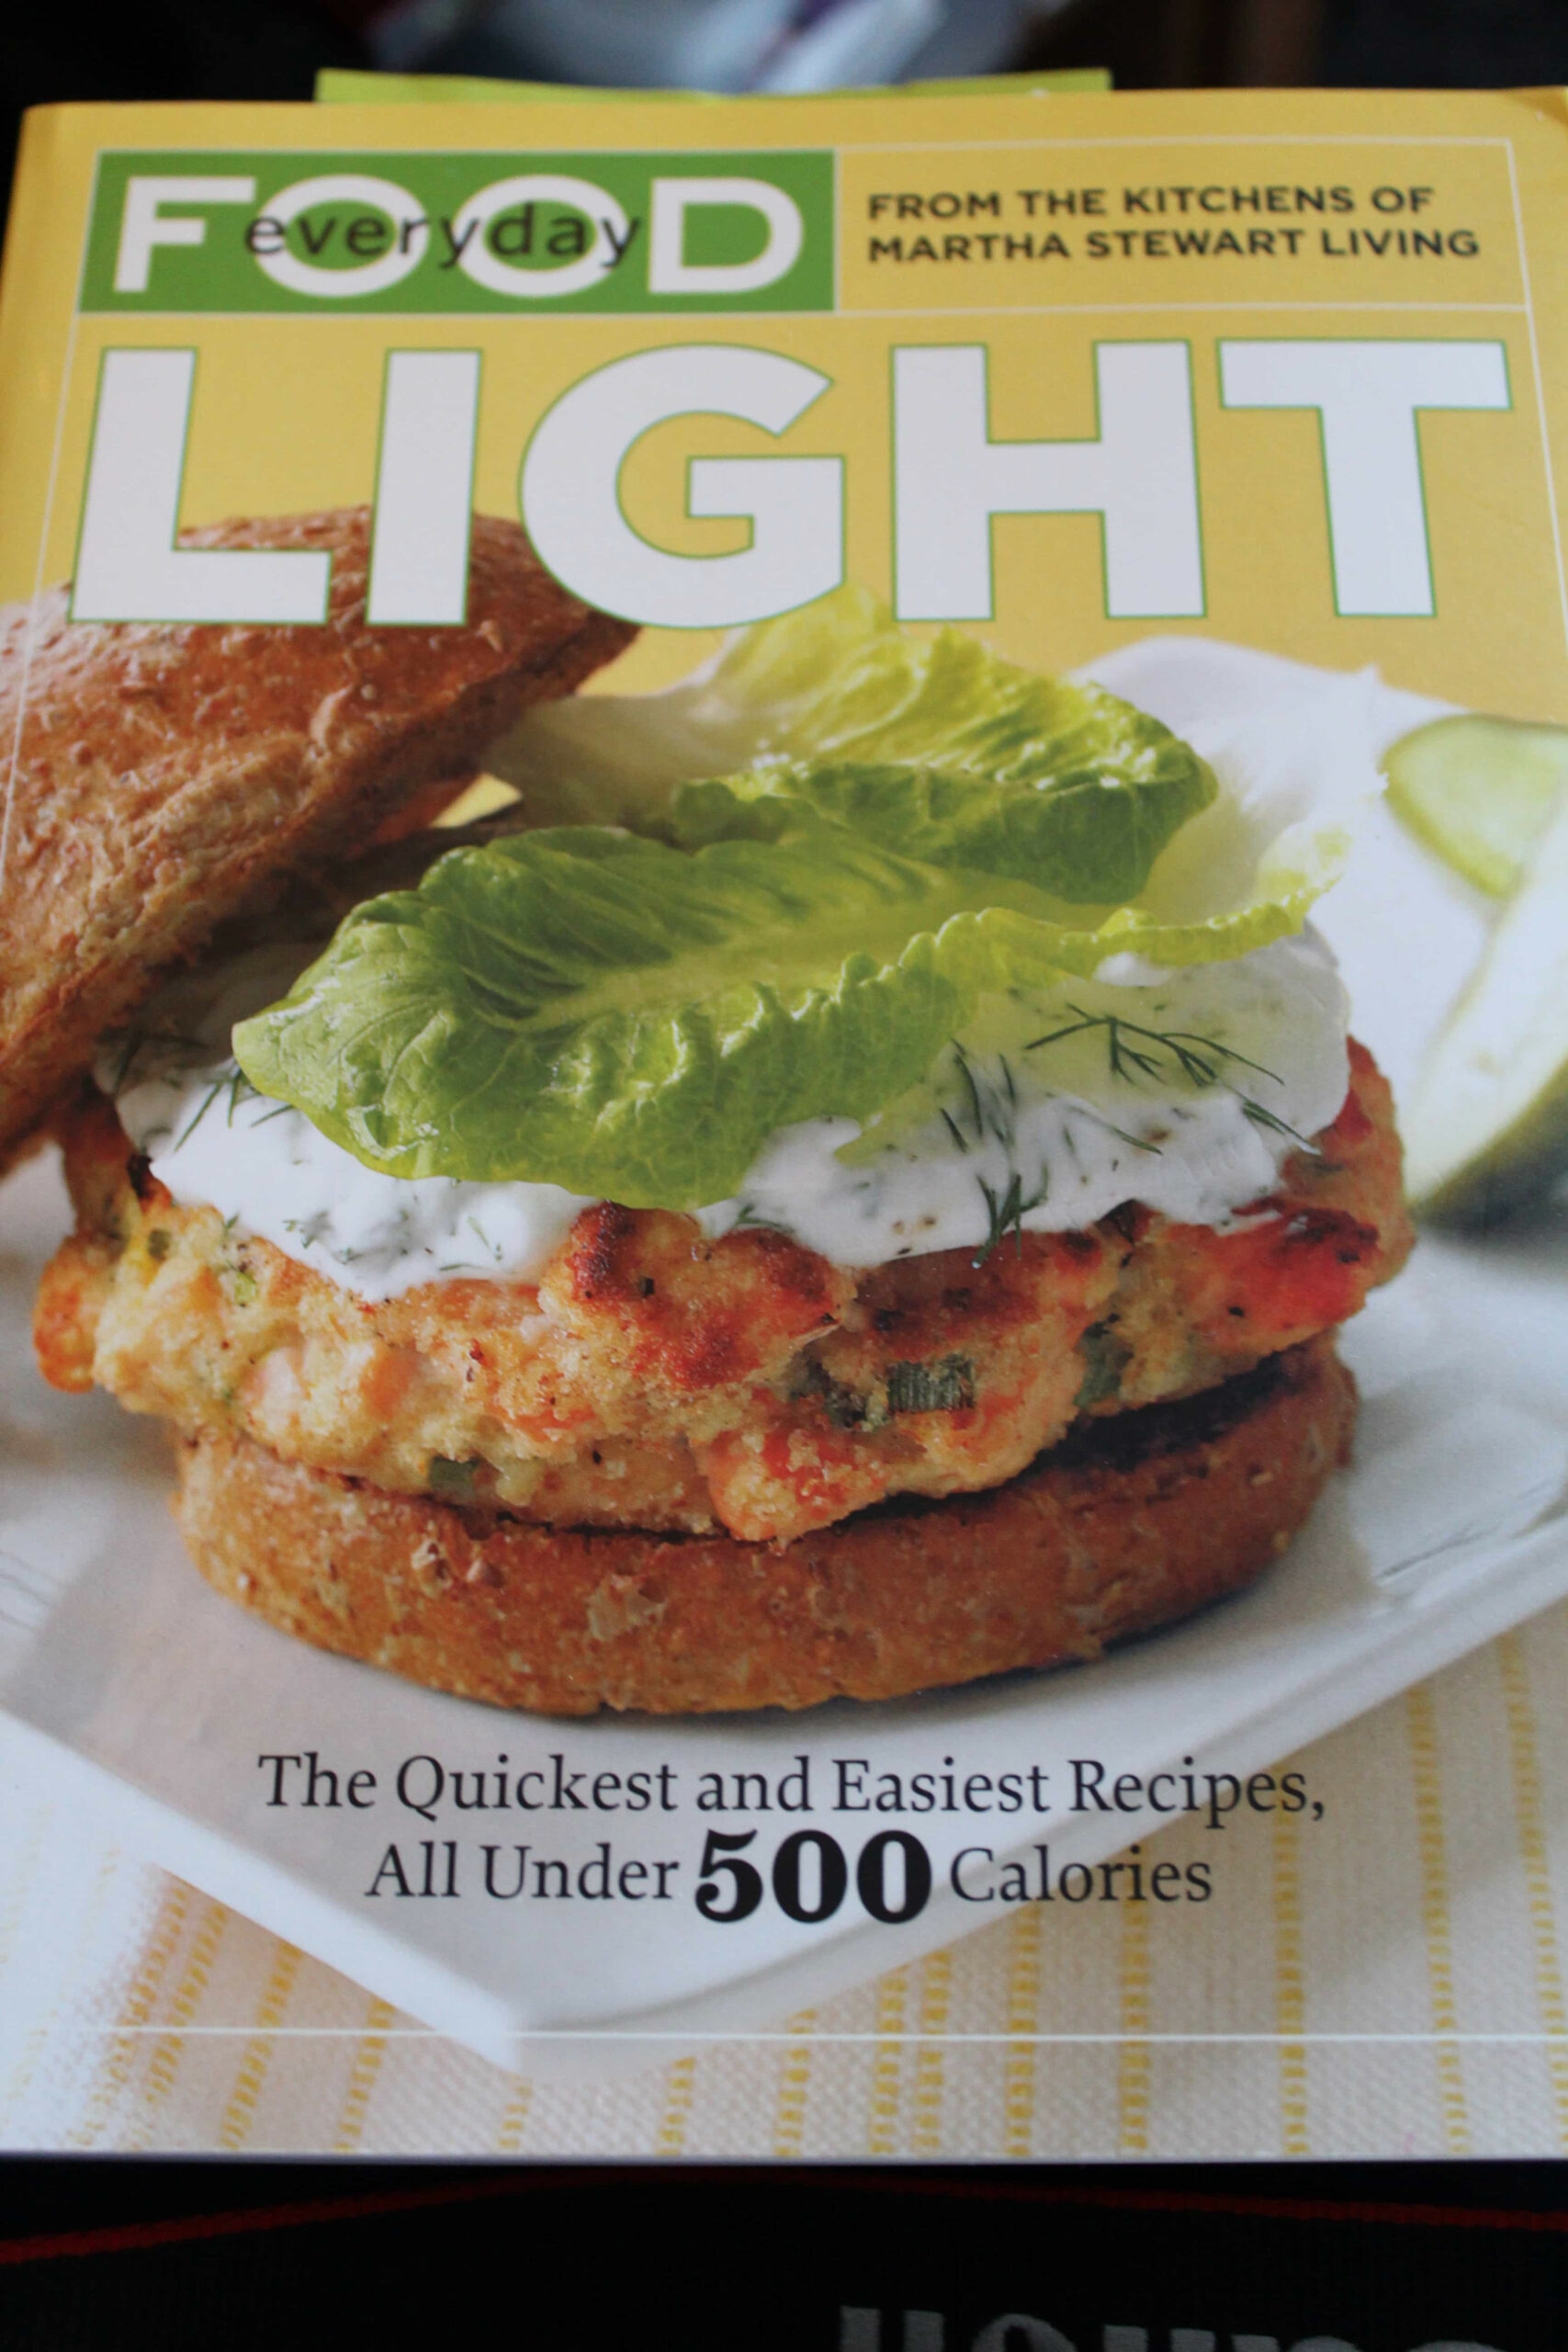 Everyday Food Light rach reads & reviews - Rachel Cooks® - recipes everyday food